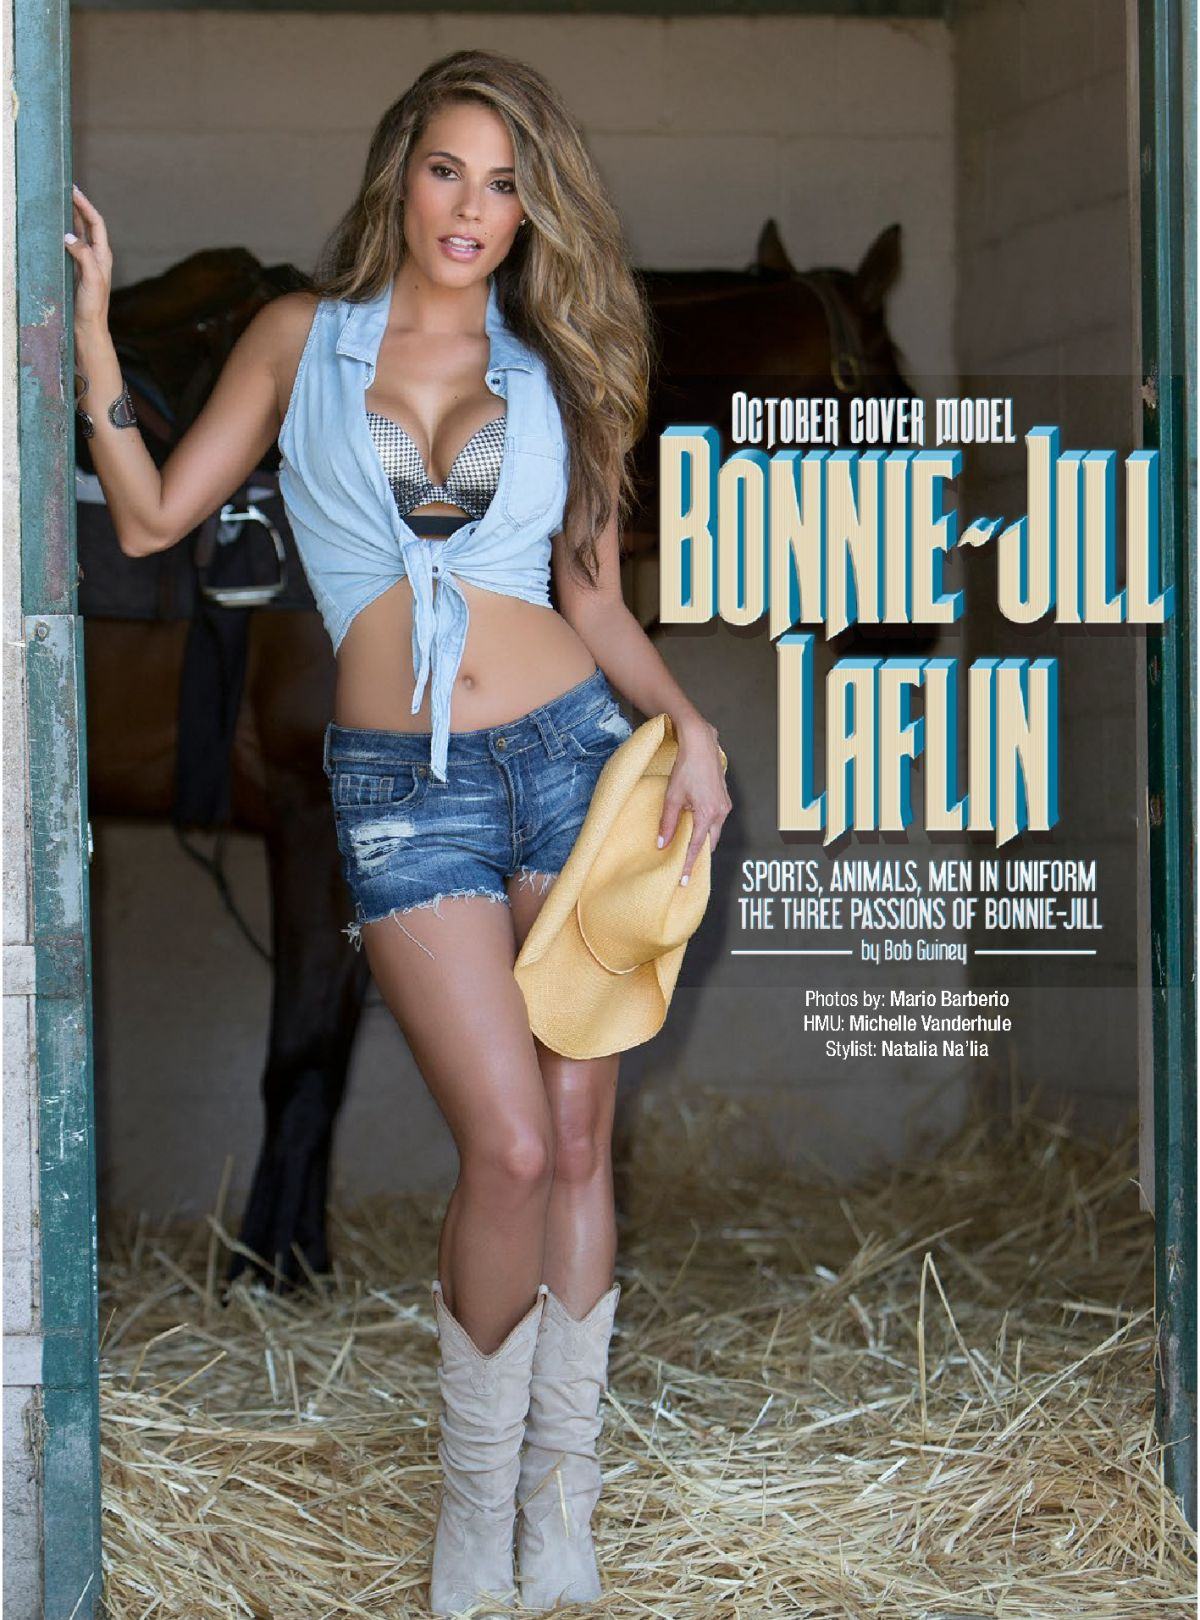 Bonnie-Jill Laflin In Kandy Magazine October 2014